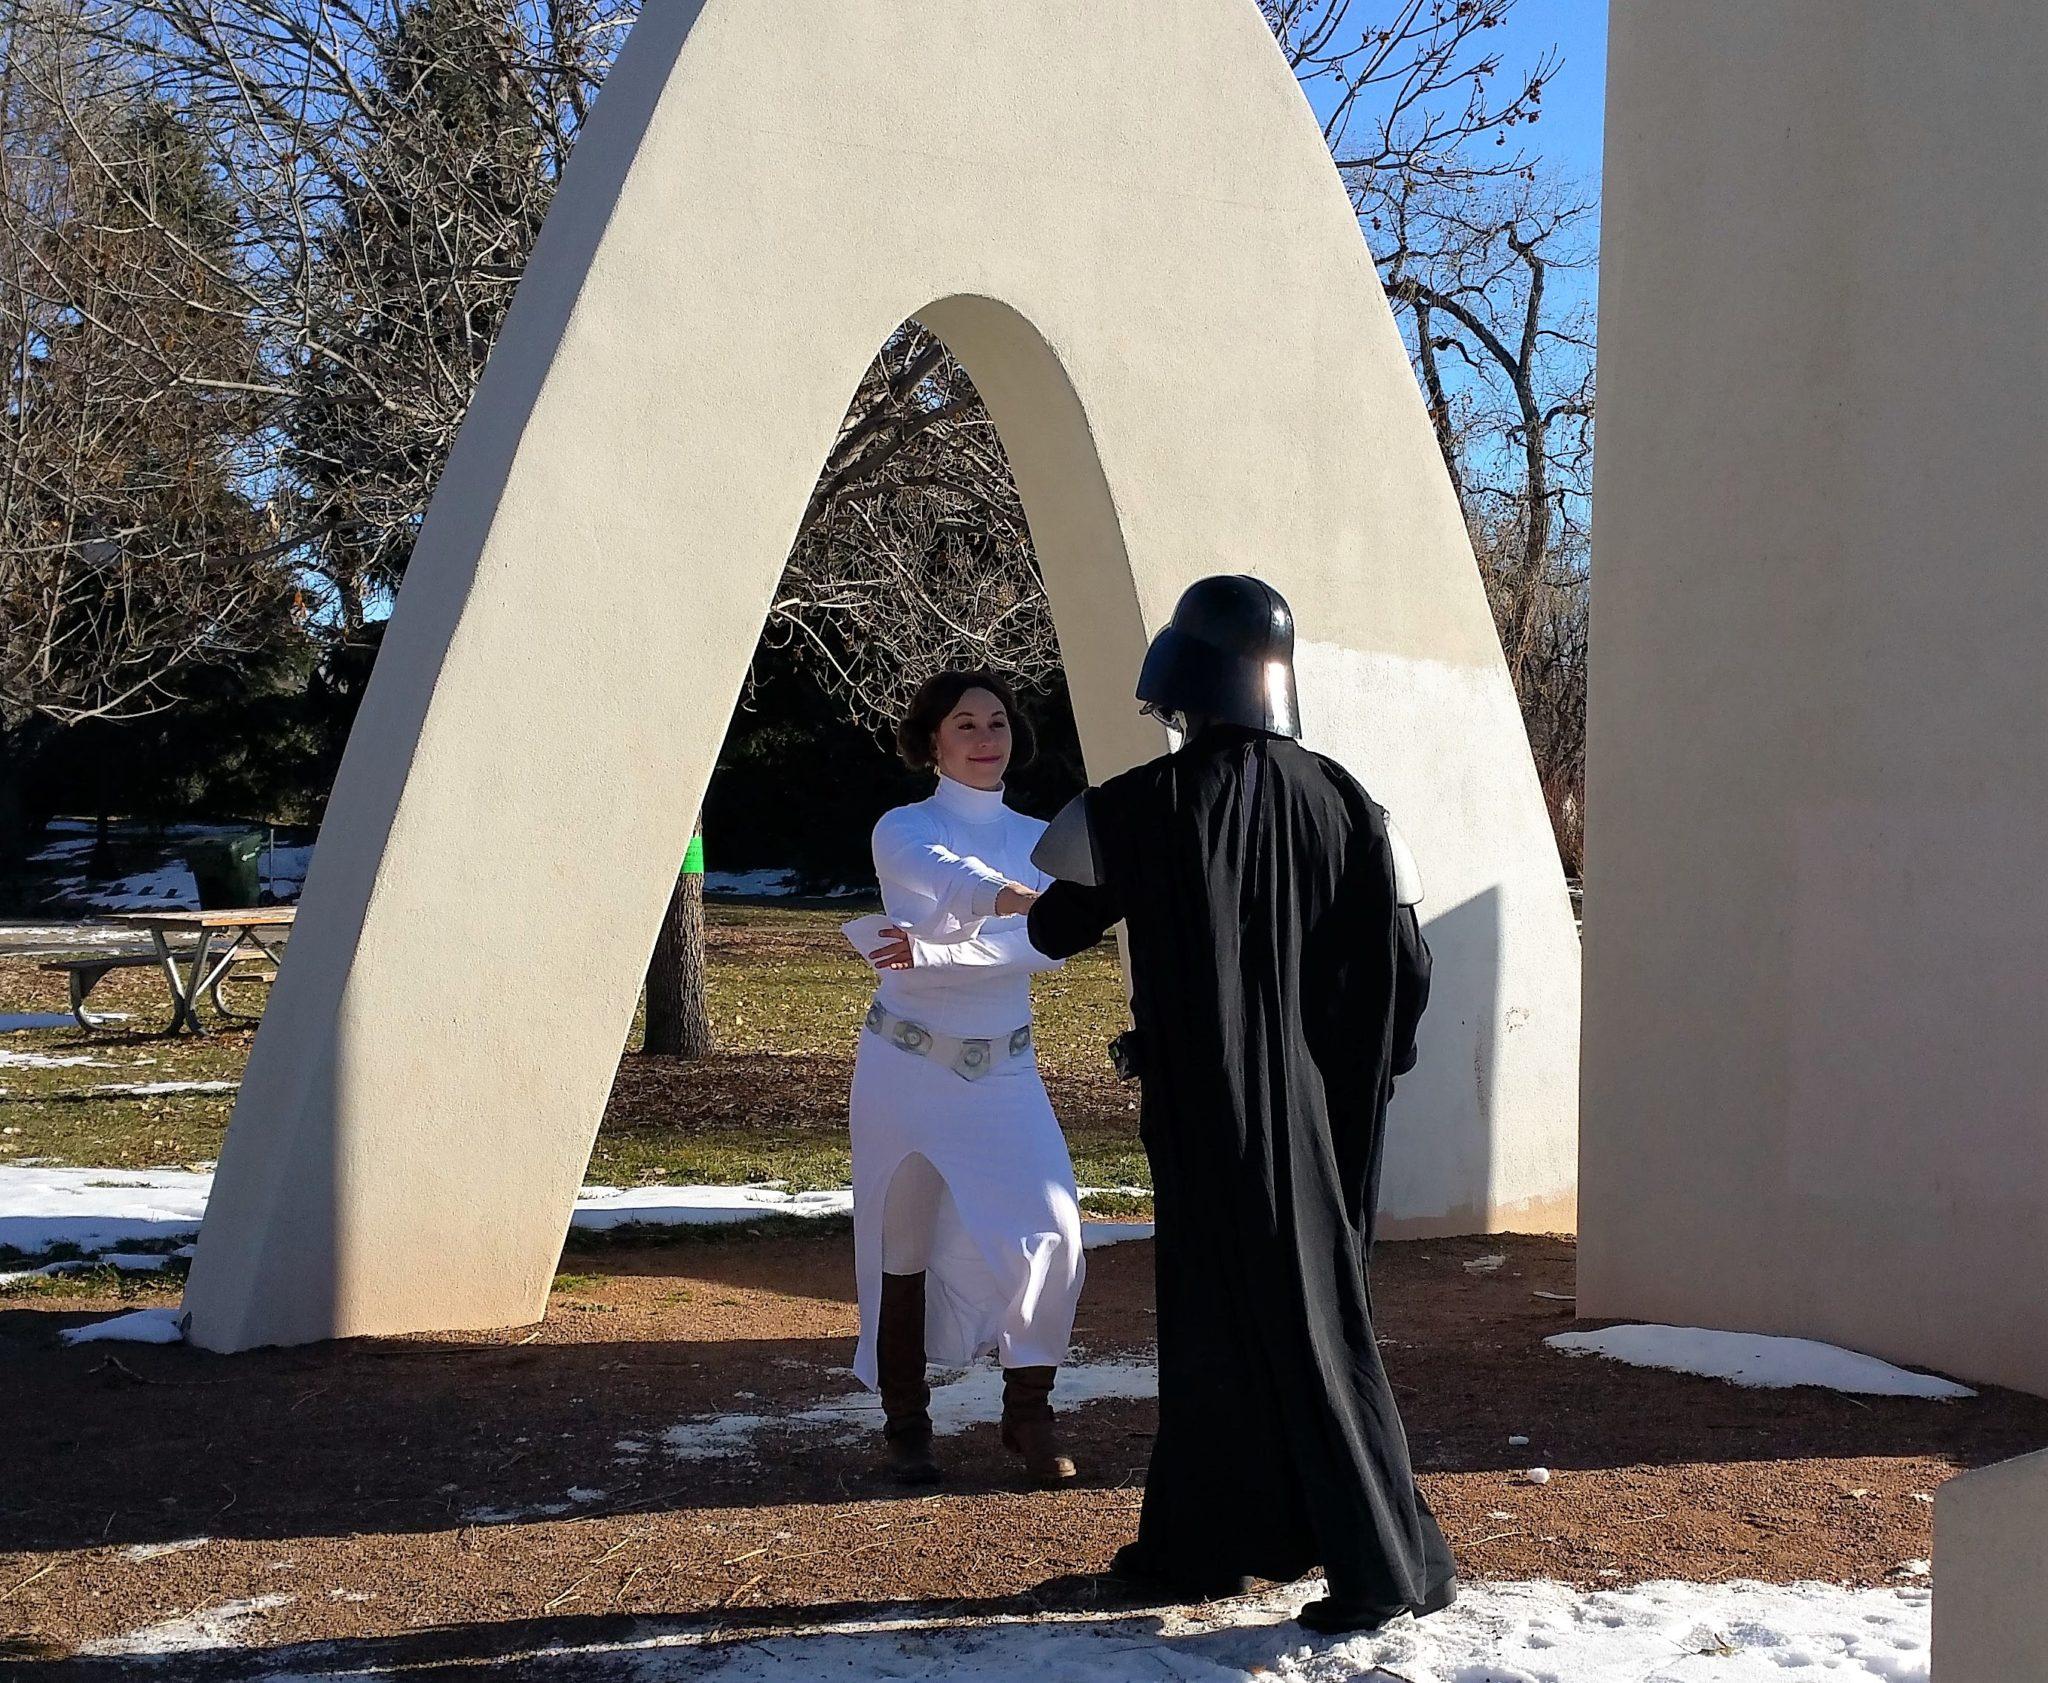 Darth Vader swing dancing with Leia